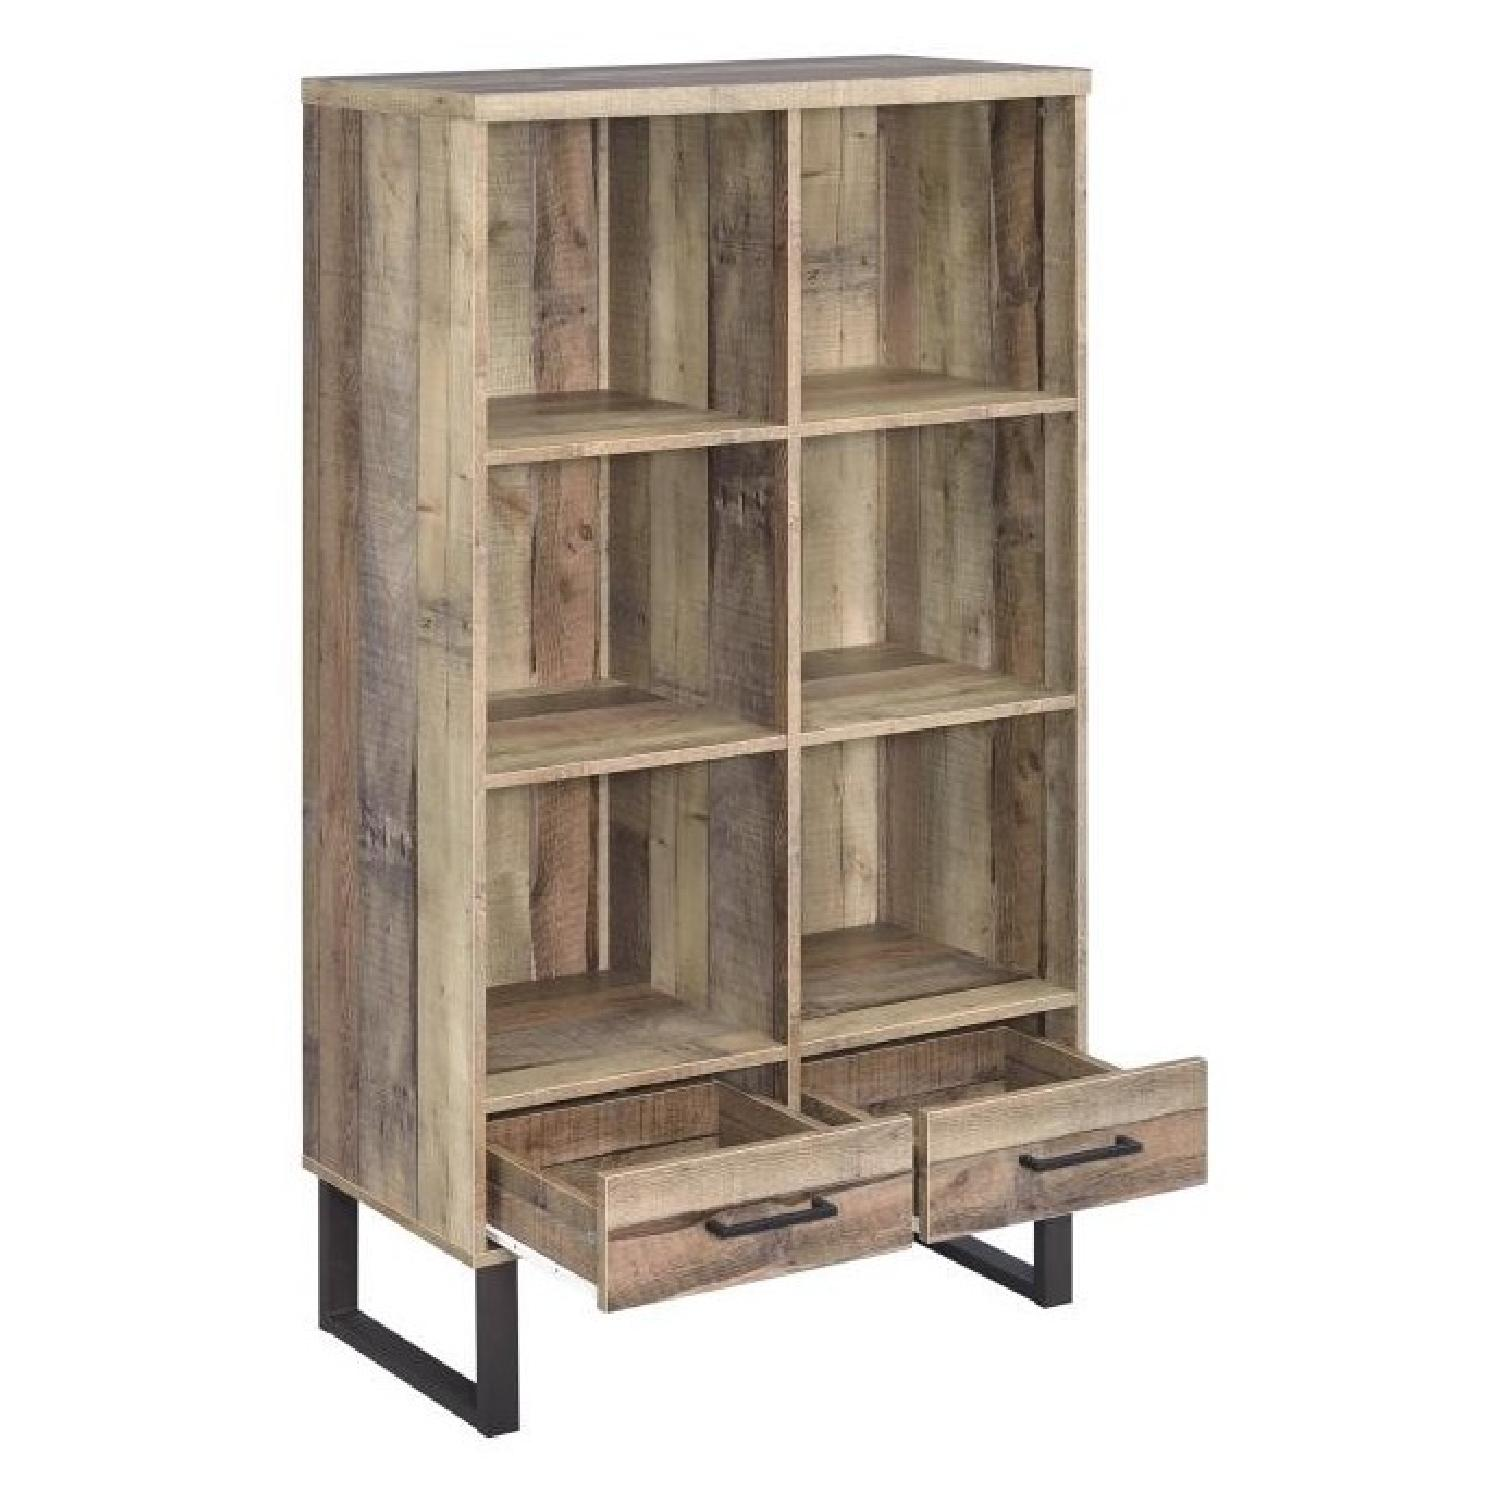 Bookcase in Weathered Pine w/ 6 Shelves & 2 Drawers